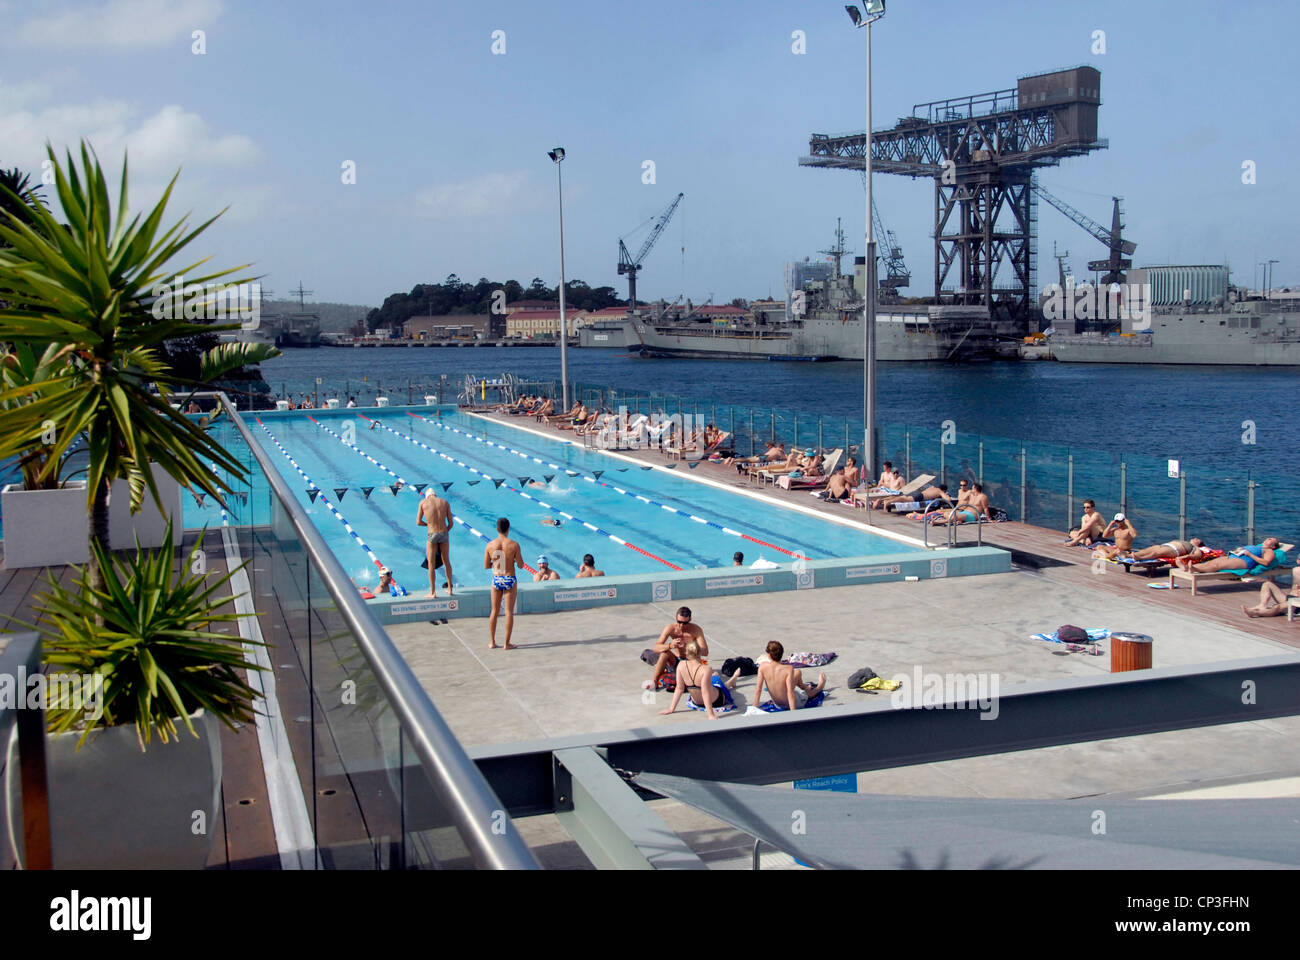 View of Boy Charlton open air Olympic size swimming pool